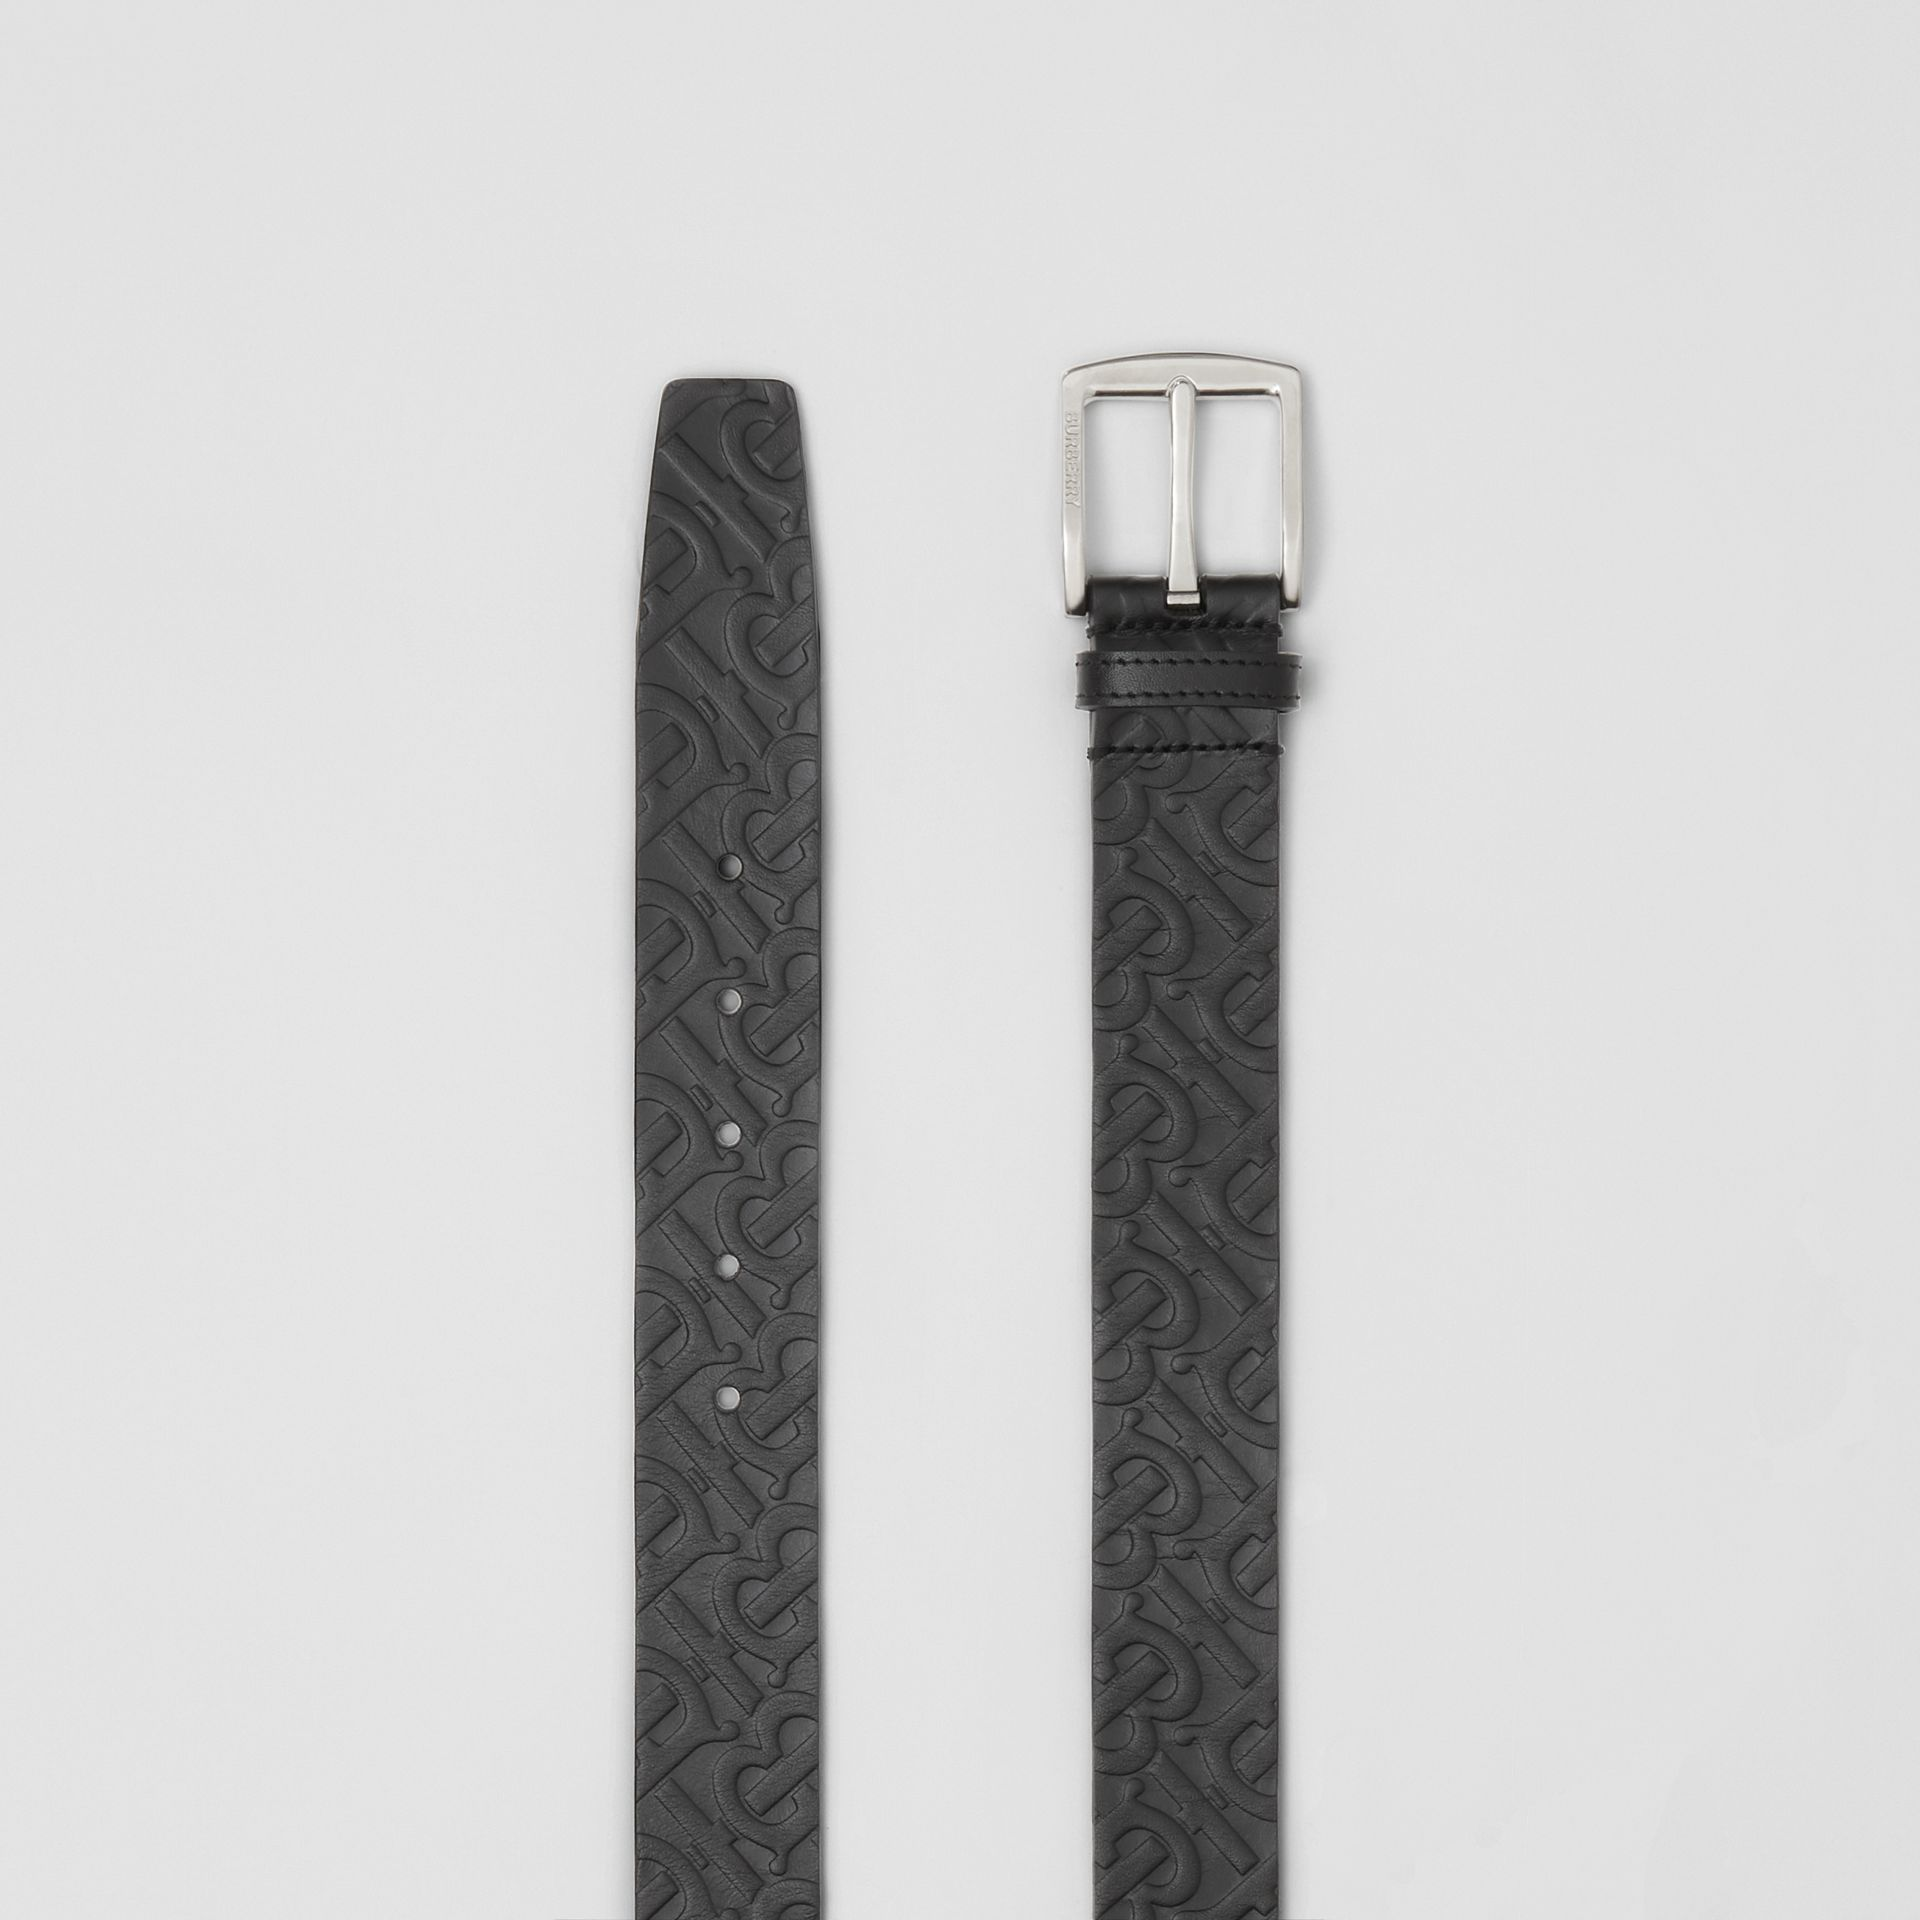 Monogram Leather Belt in Black - Men | Burberry Australia - gallery image 5